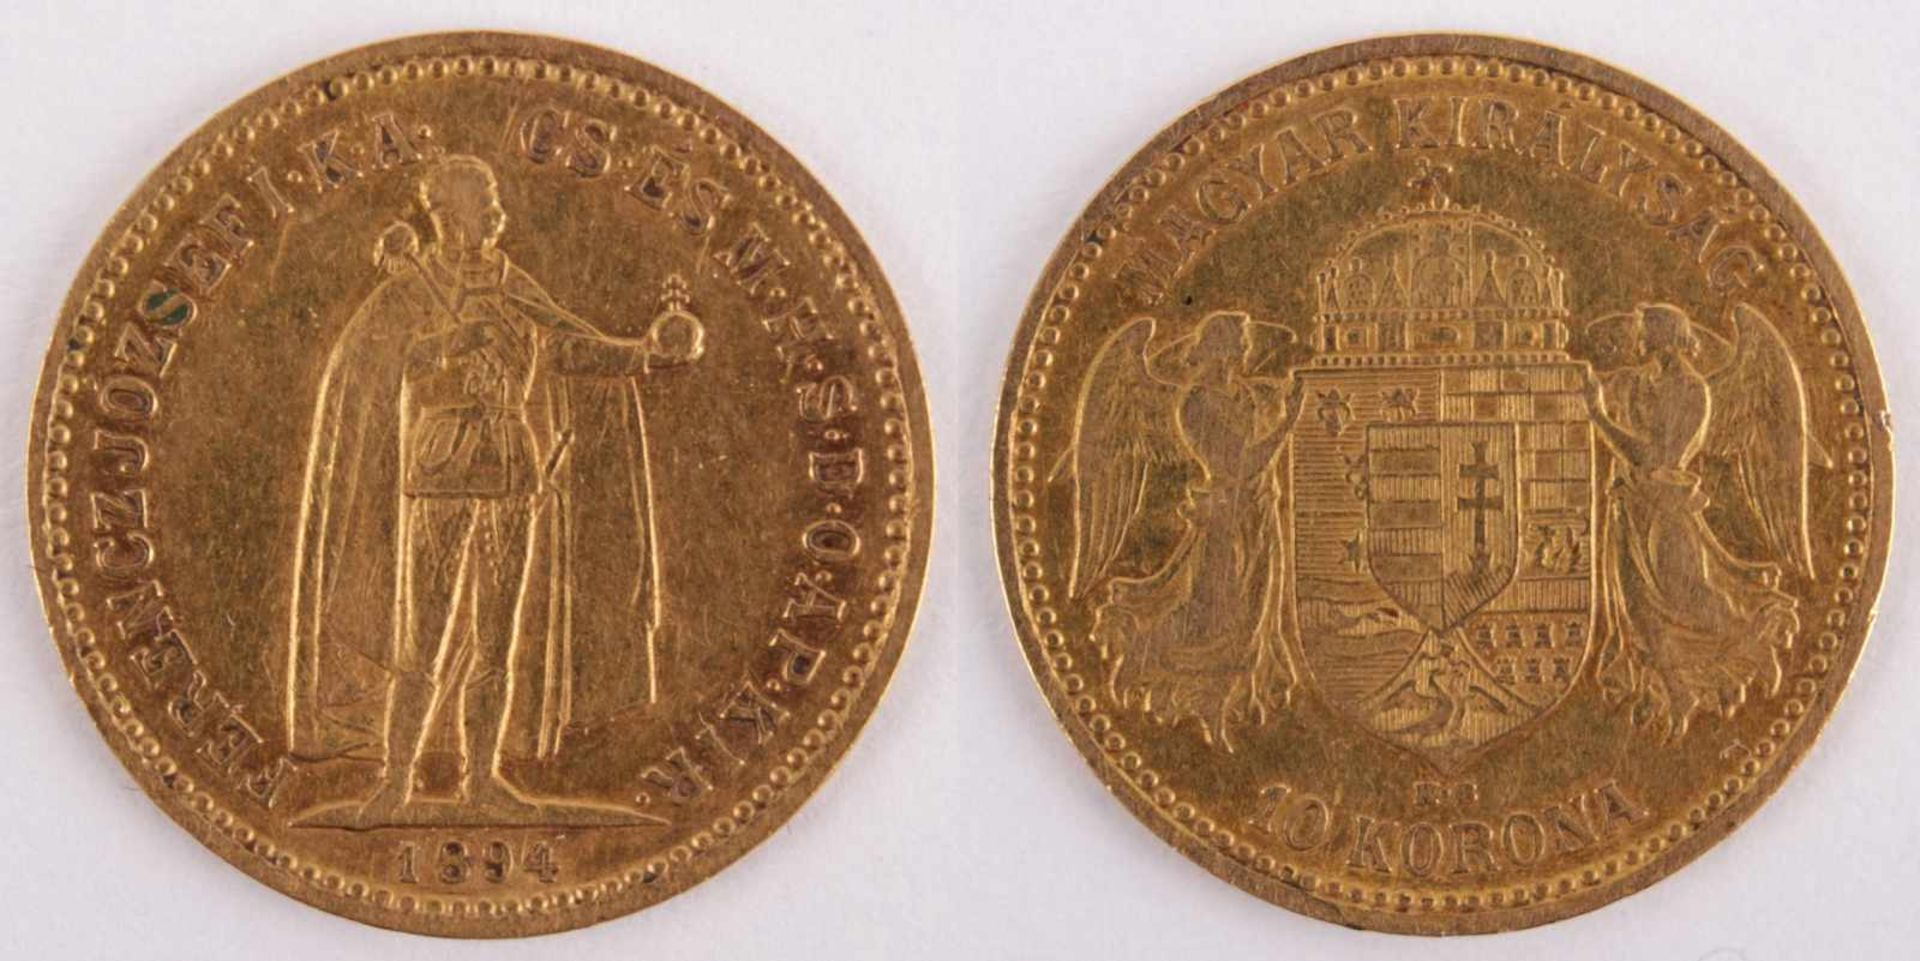 Los 3 - Gold coin: 10 Crown 1894 Austria-Hungary, 10 Crown, year 1894 KB, gold coin, 900/1000 fineness,